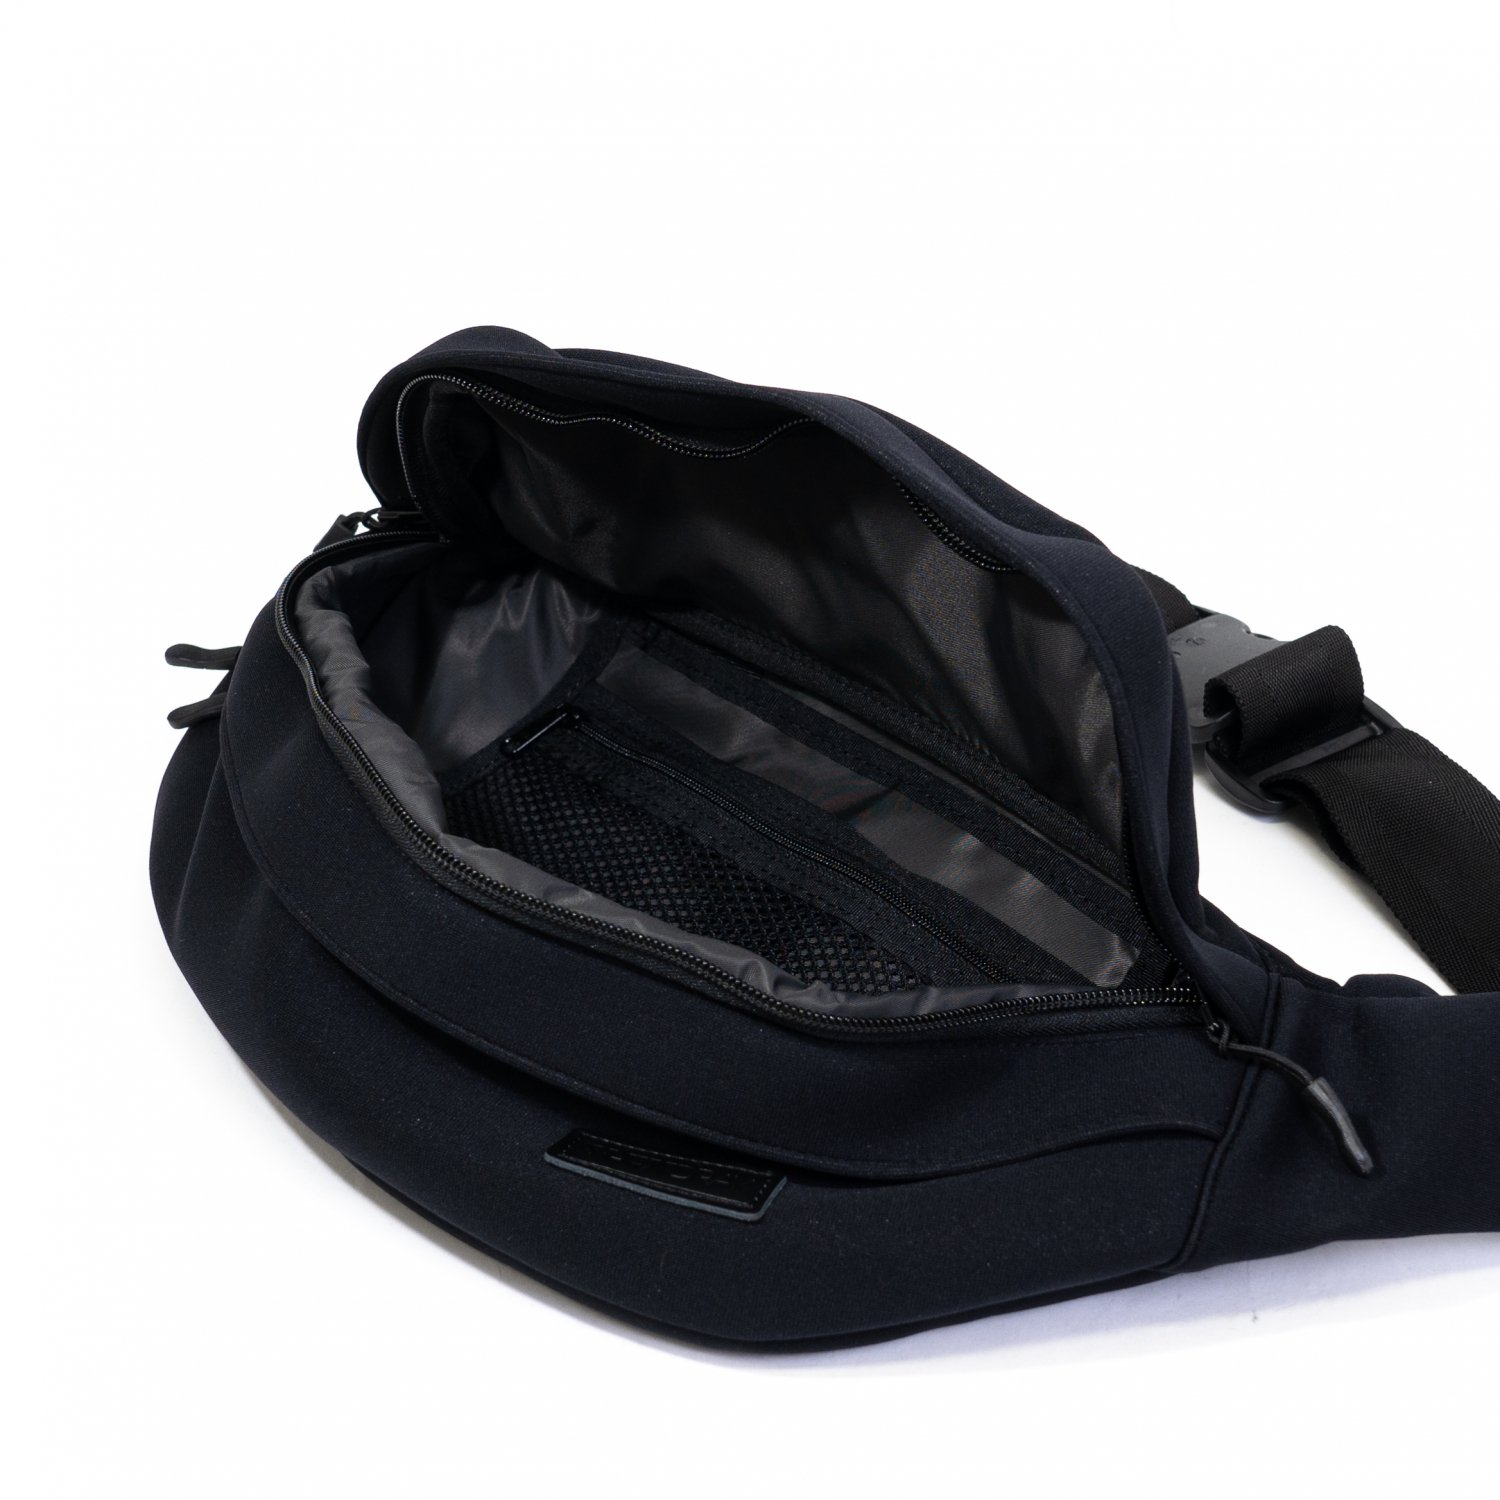 LEXDRAY * Singapore Fanny Pack - made in Japan BLK COLLECTION -  * Black